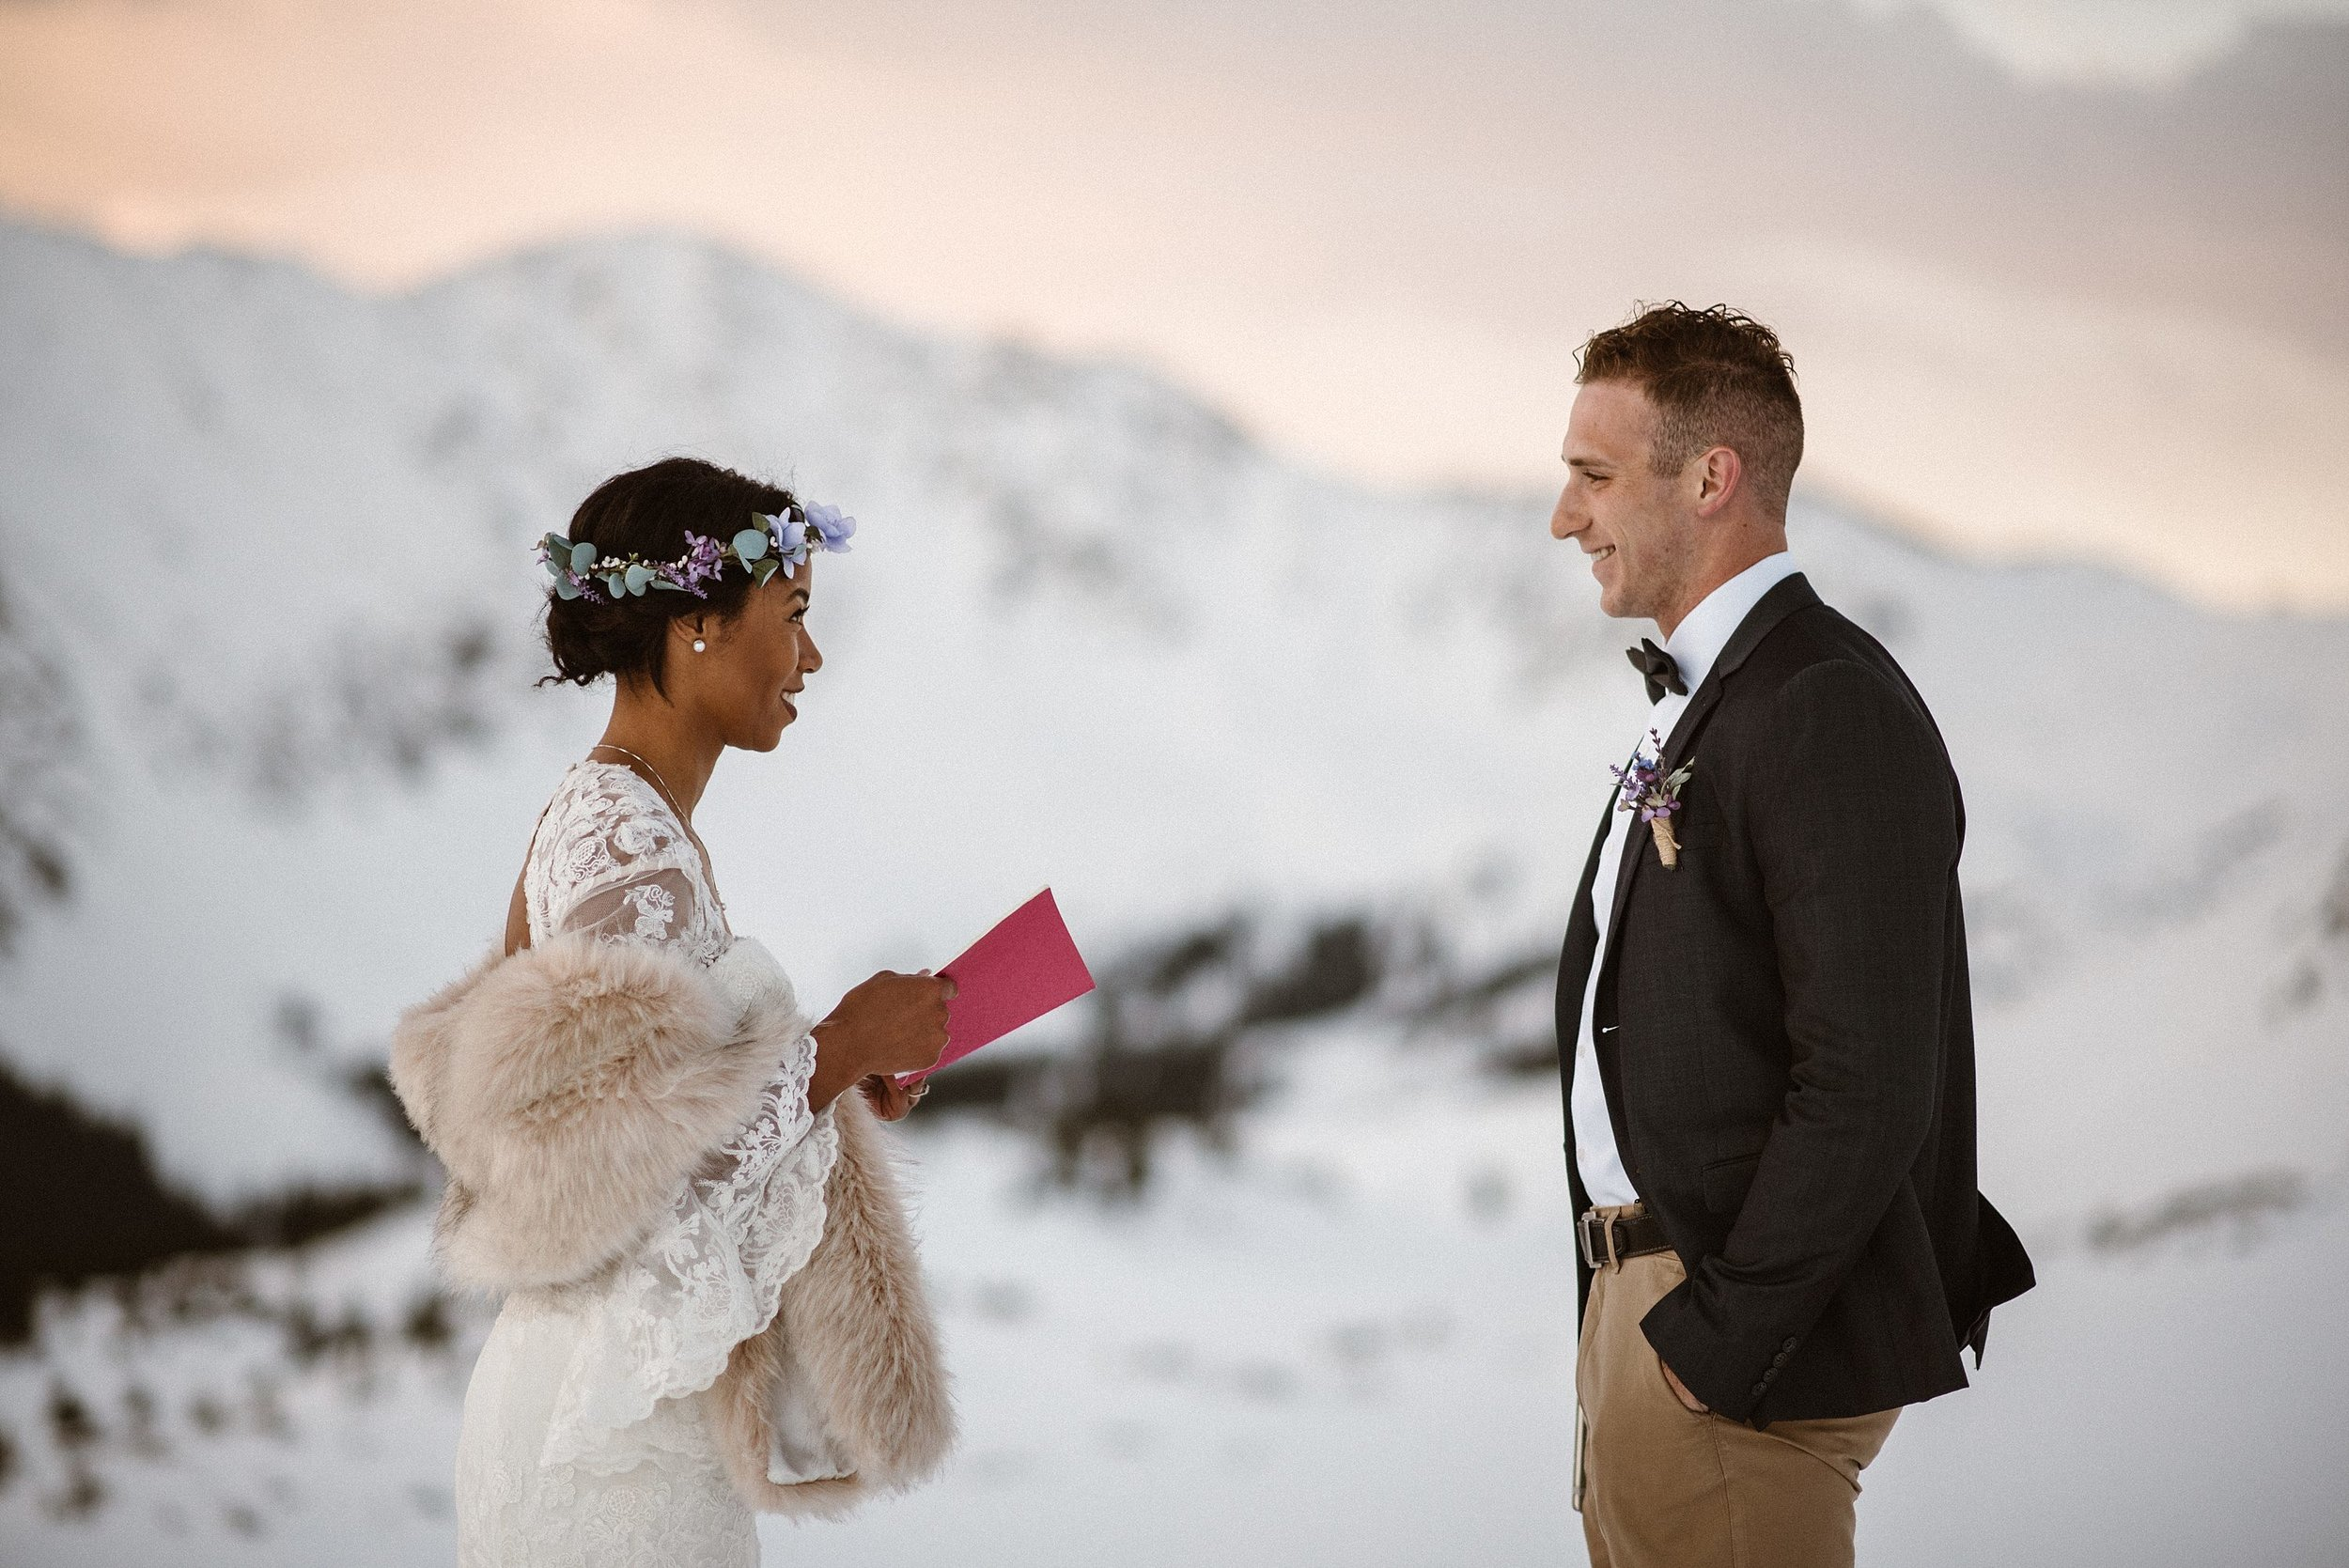 Giving him a smile worth a thousand words, Mikayla and Jared had come to the perfect spot up Loveland Pass where they would say their vows. The only witness to their elopement, their intimate wedding photographer Maddie Mae.